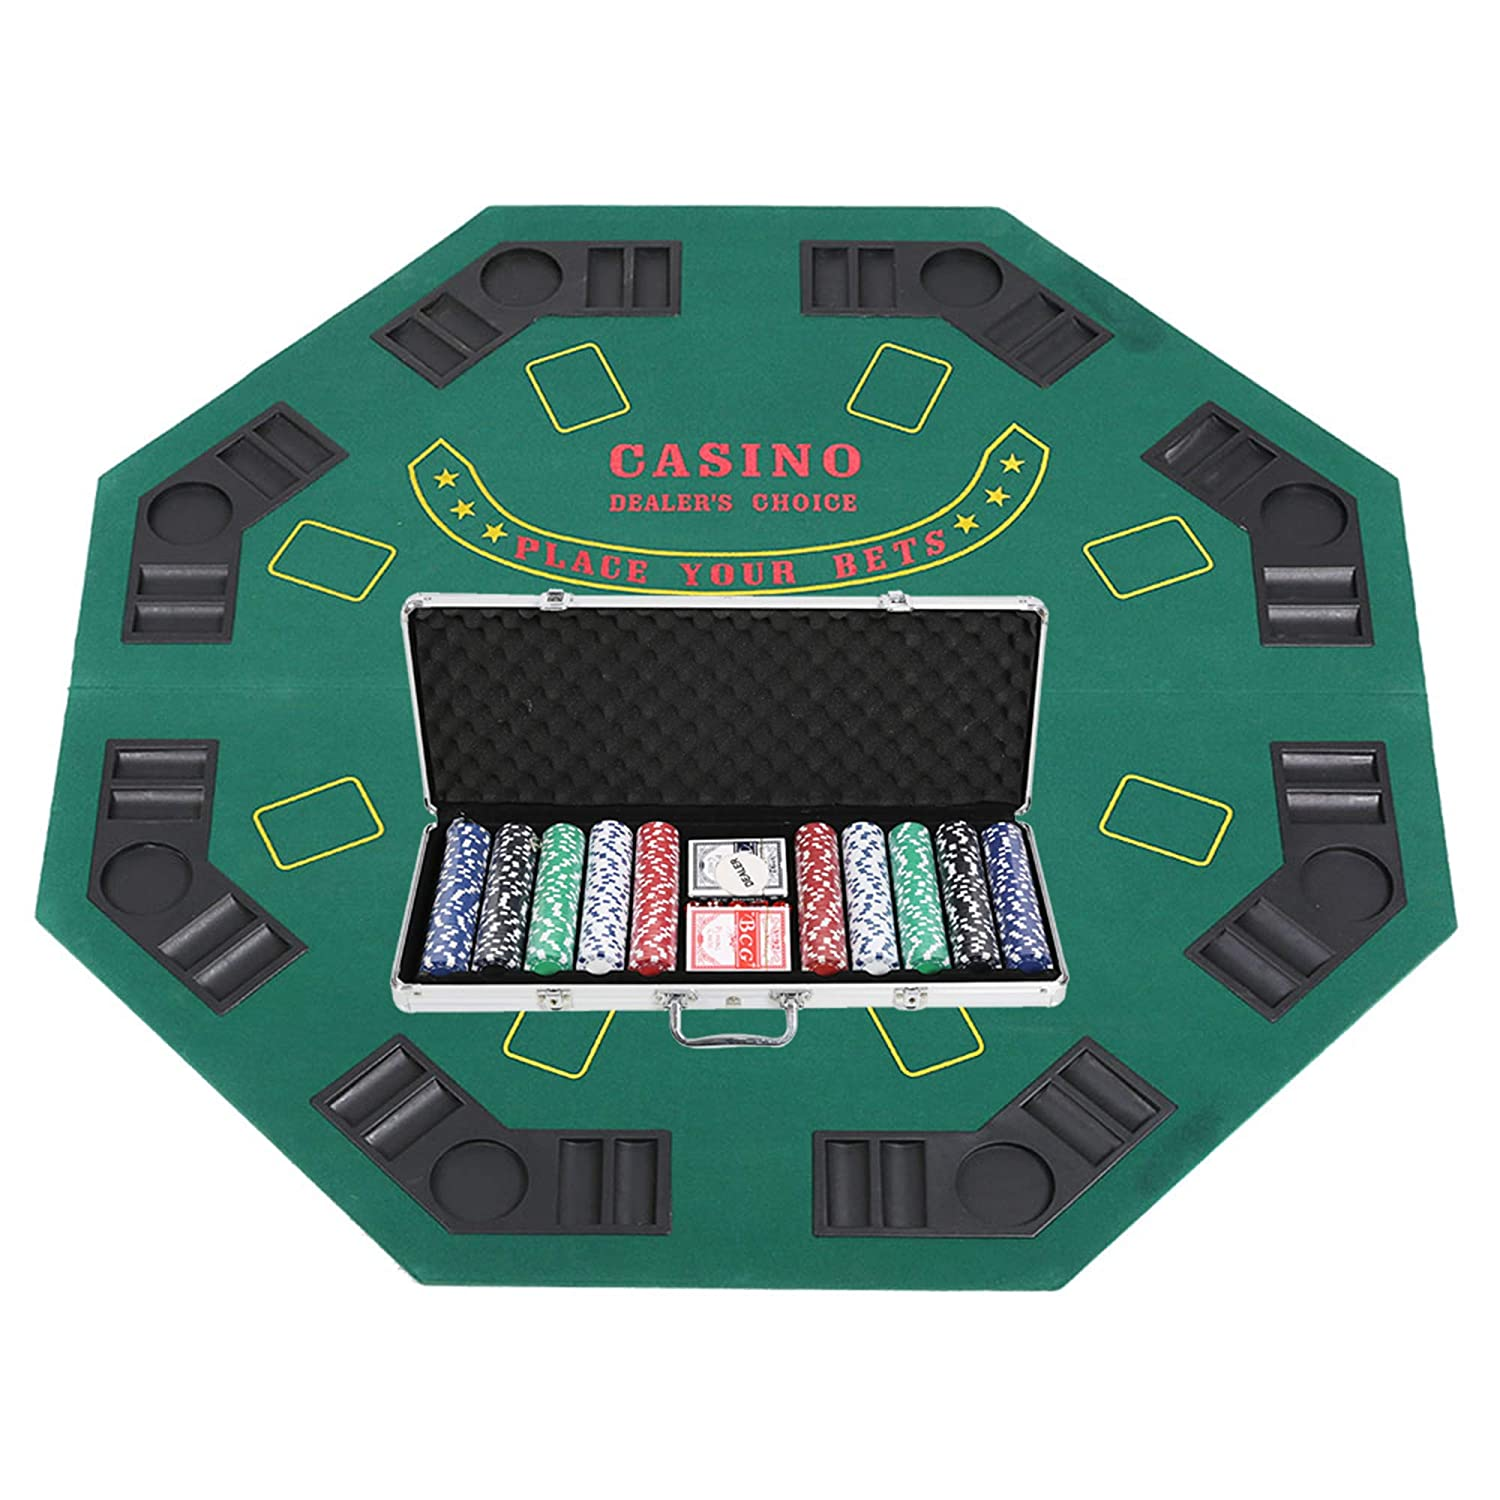 Genial Lucky Tree 47u201d Poker Table Top With Poker Chip Set   Folding 8 Players  Octagon Felt Topper Casino Blackjack Texas Holdem Game Table Layout With  Drink ...